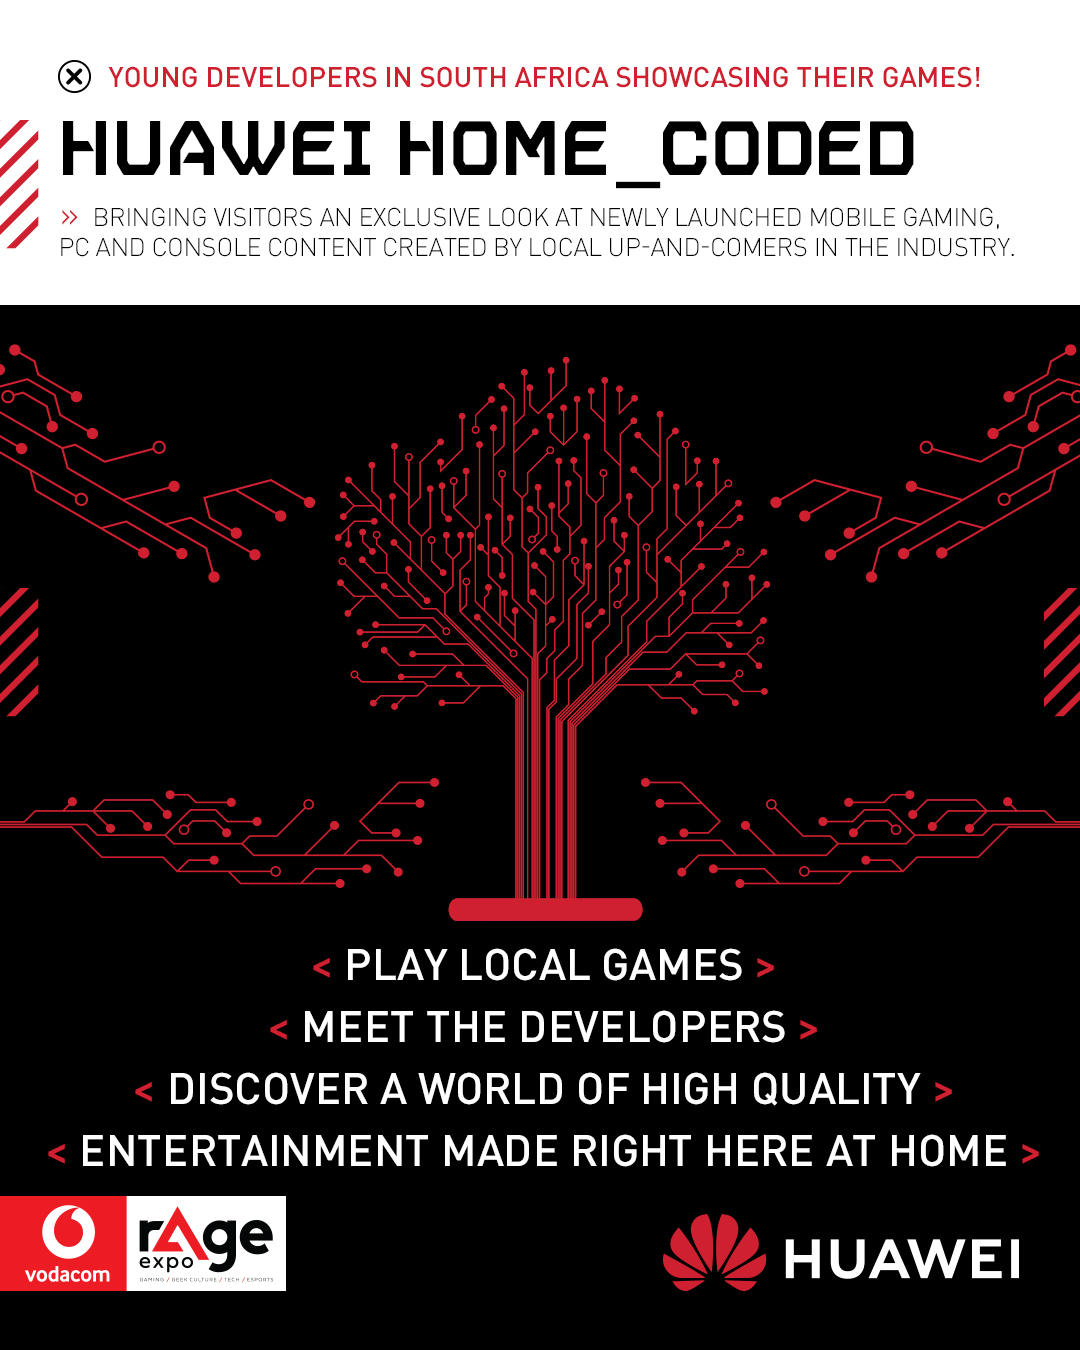 Vodacom rAge 2019 - Huawei home_coded